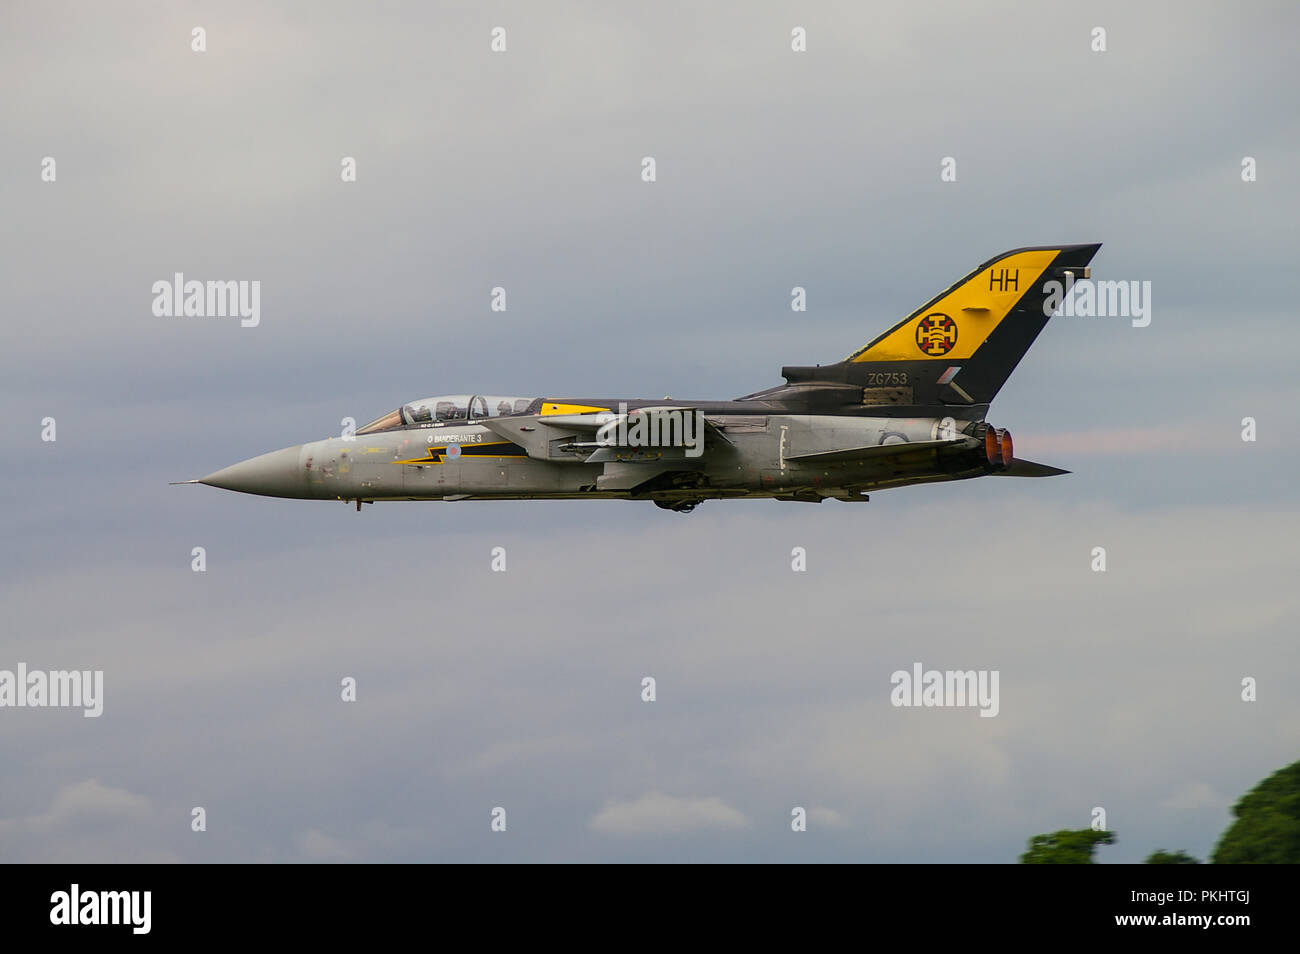 Royal Air Force Panavia Tornado F3 jet fighter plane. RAF Tornado ADV Air Defence Variant ZG753 HH 0 Bandeirante 3 No 111 (Fighter) squadron - Stock Image